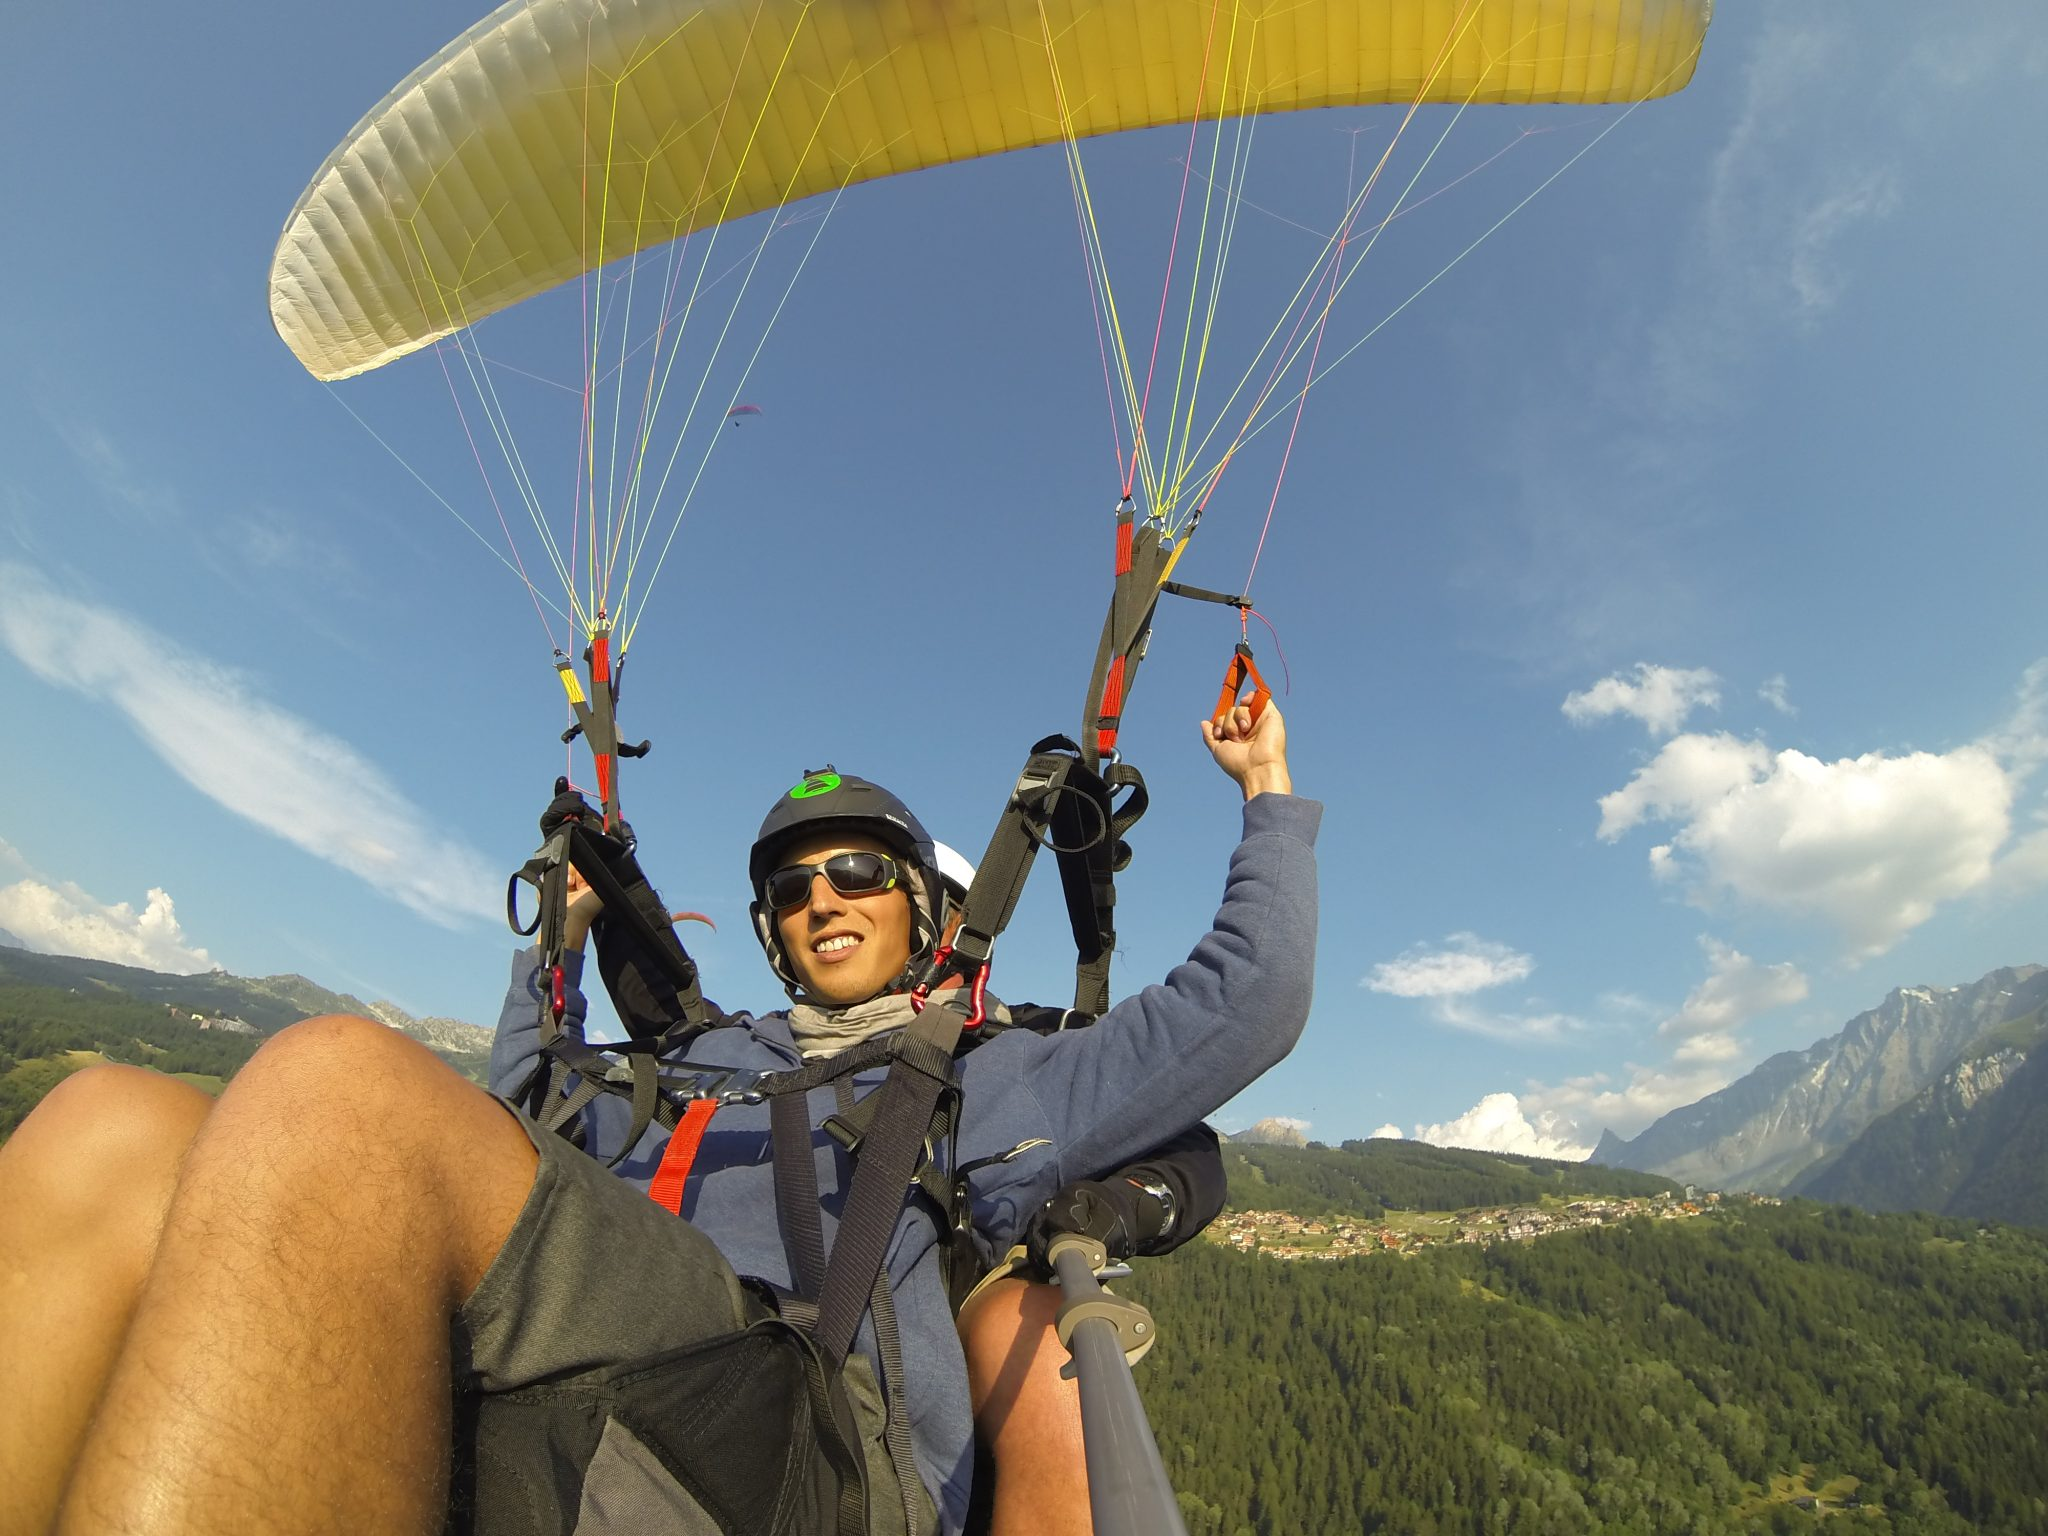 Unbelievable July month for paragliding. 8